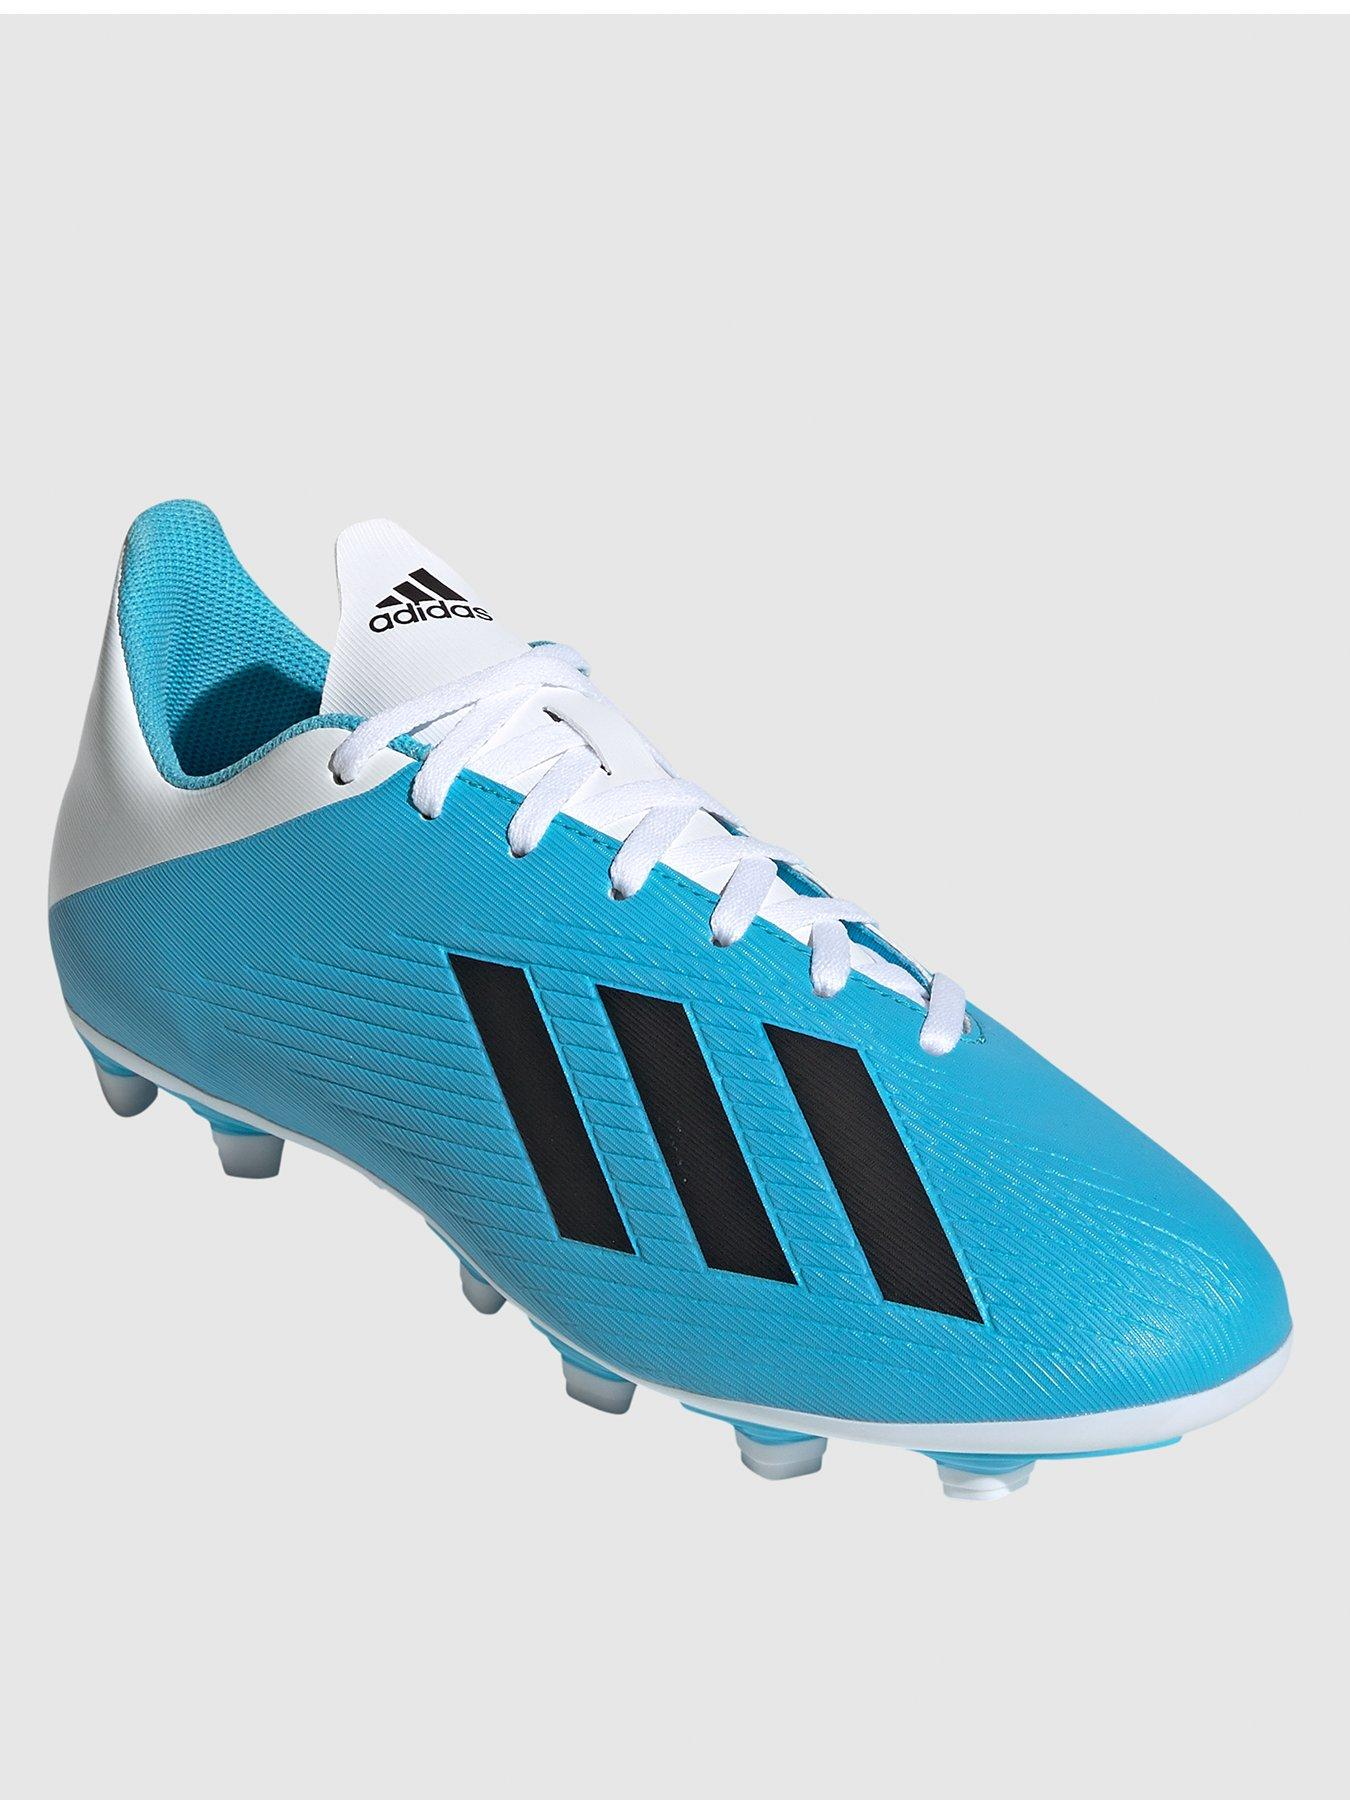 Firm Ground | adidas X | Football boots | Mens sports shoes